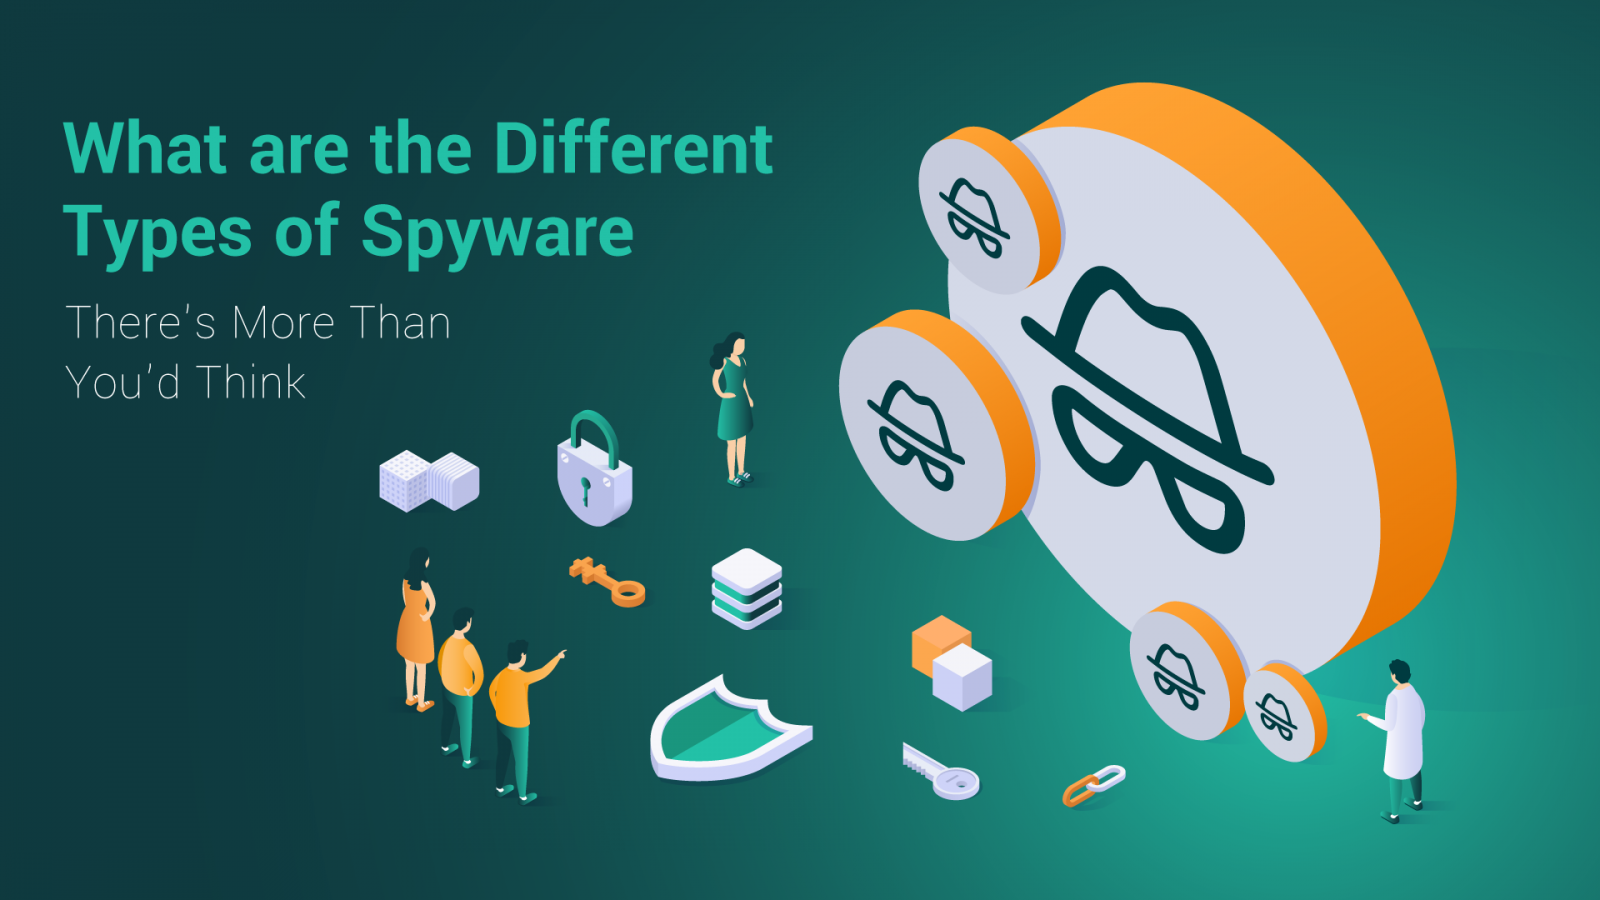 Different Types of Spyware